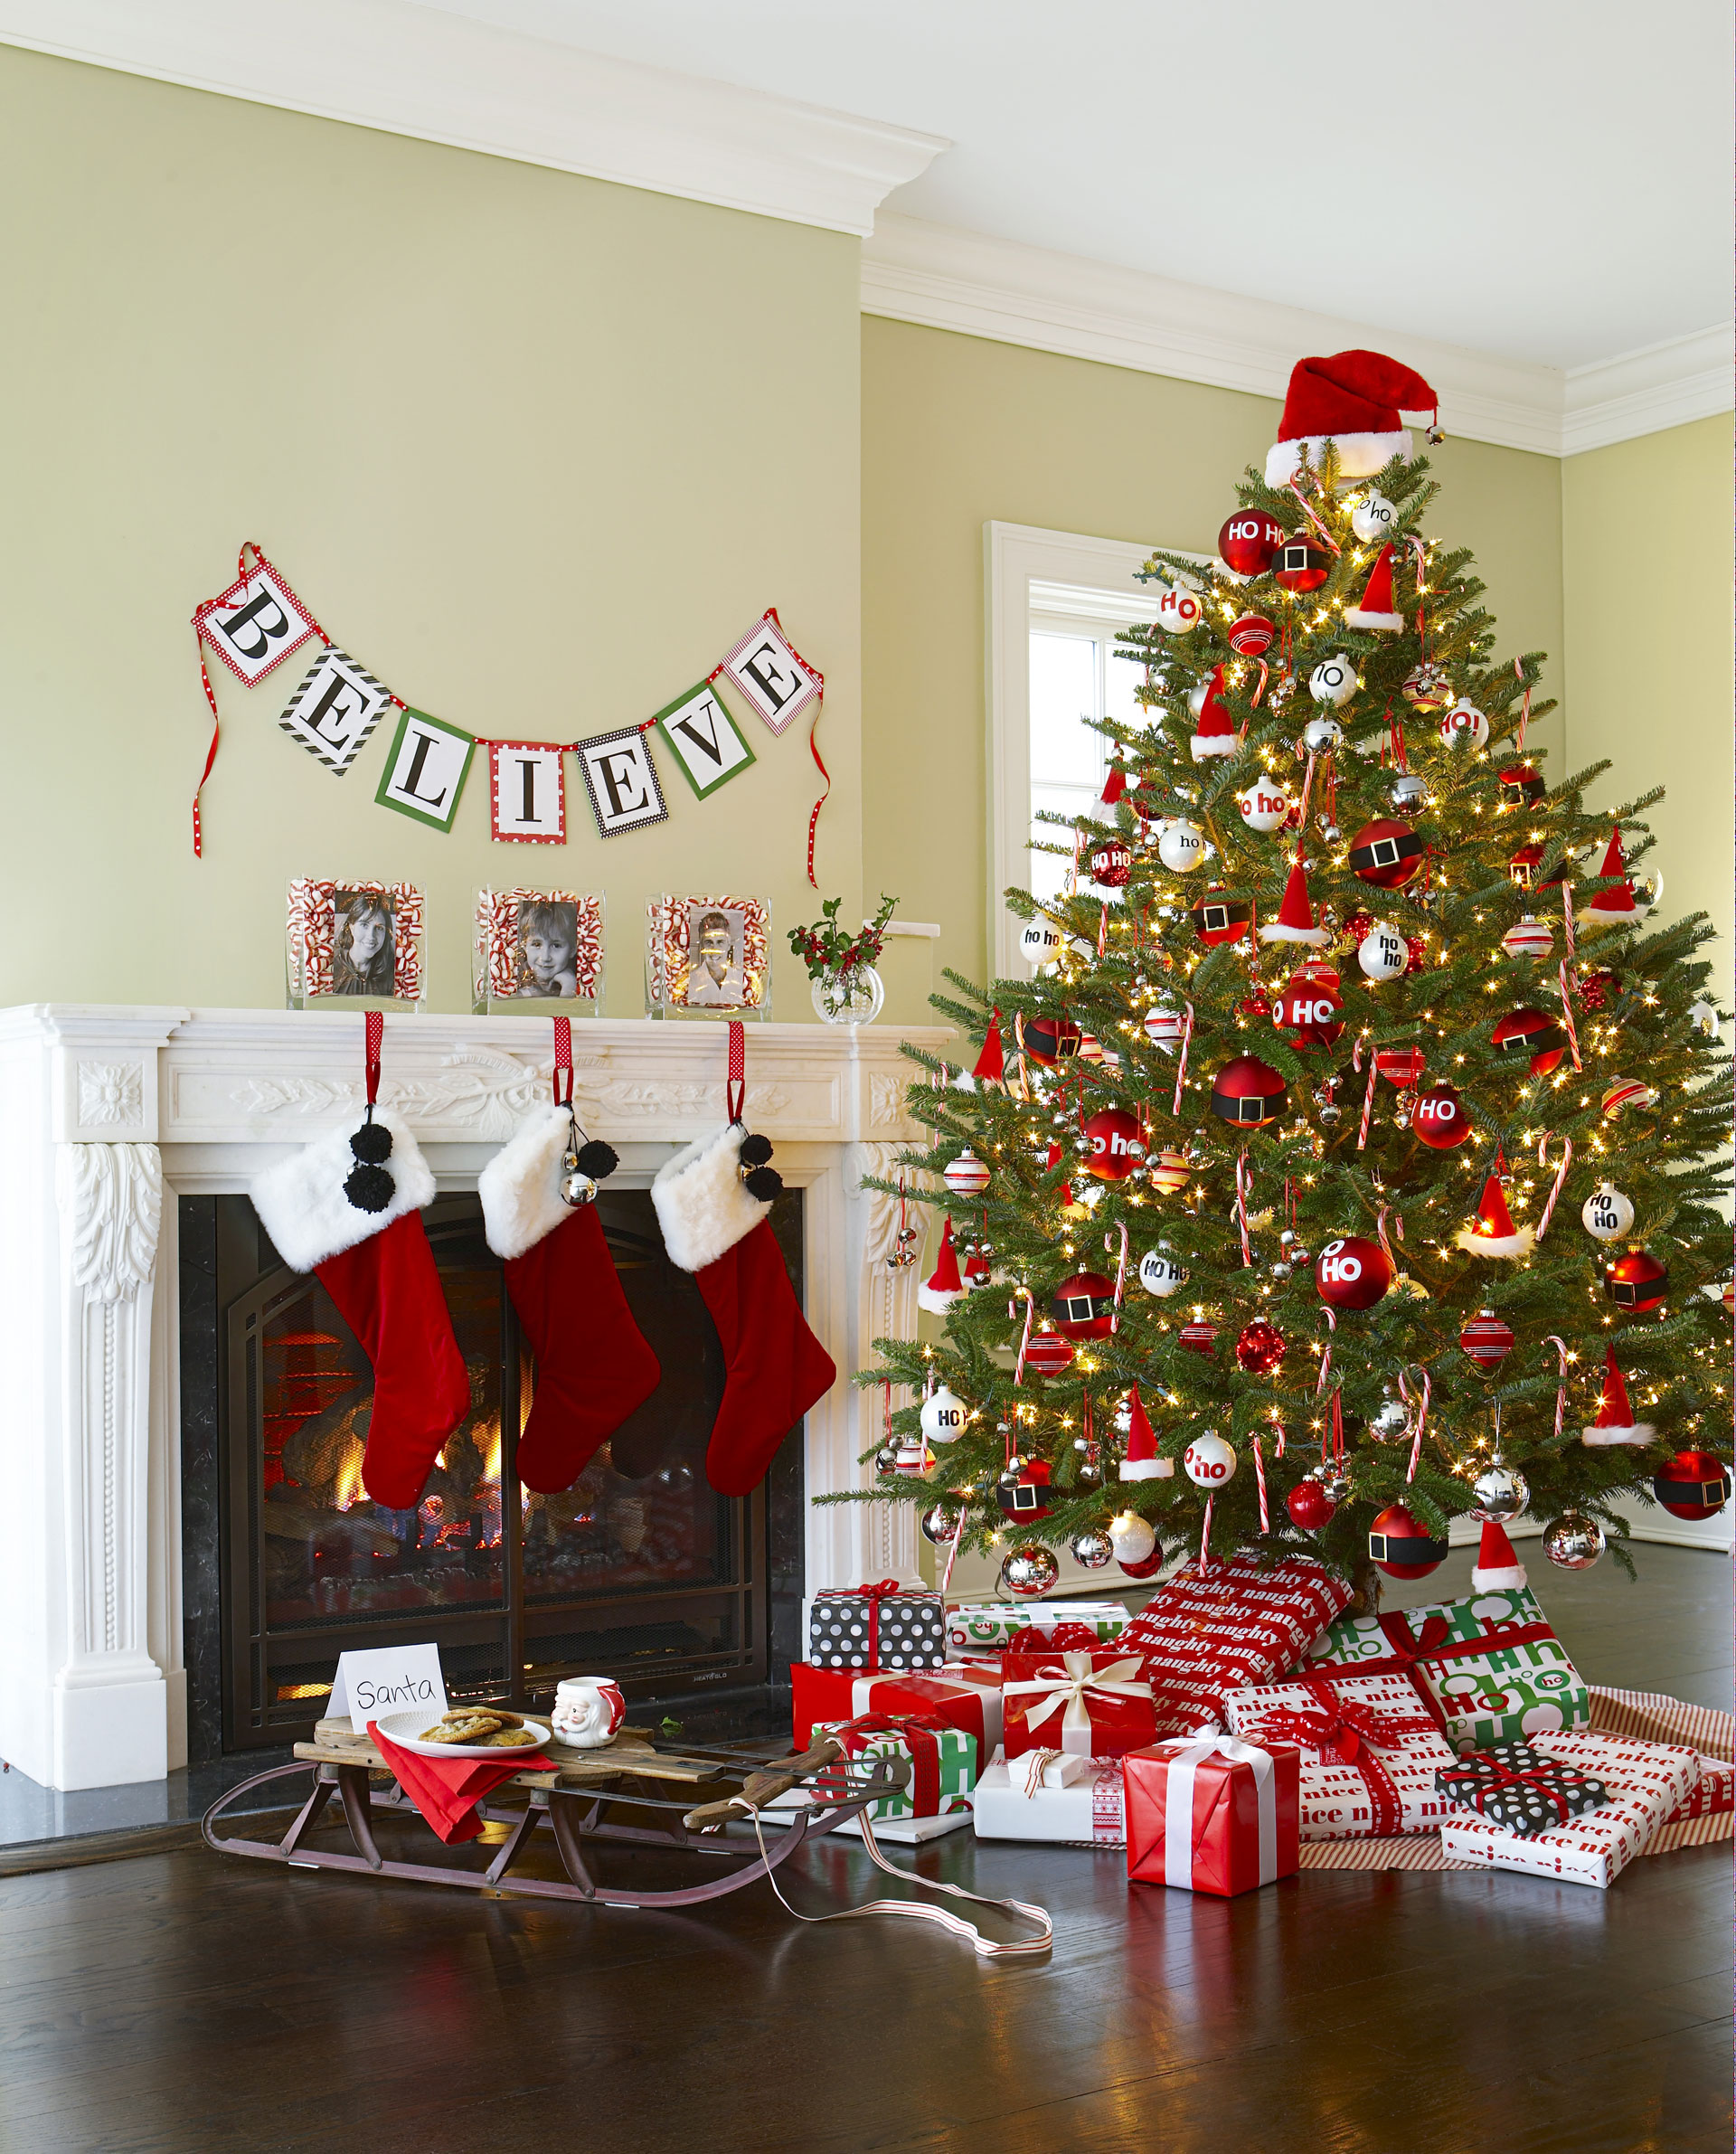 5 Best Christmas Party Themes - Ideas for a Holiday Party